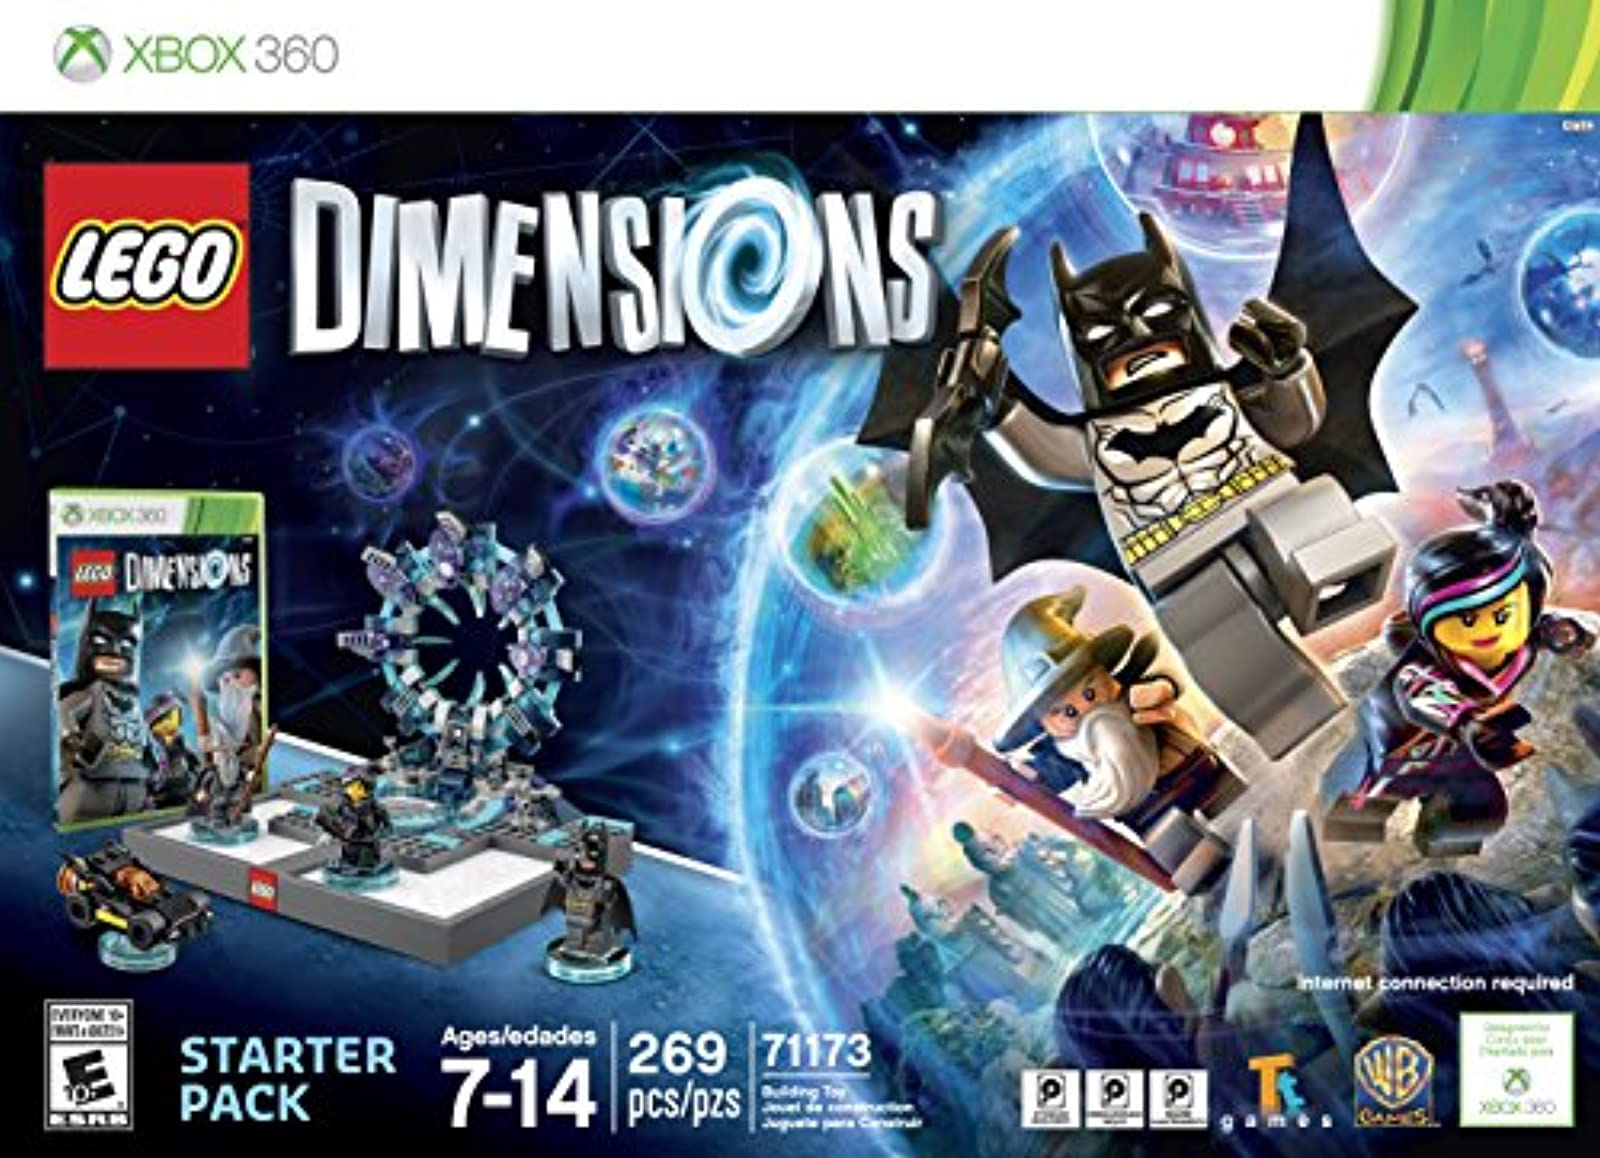 Lego Dimensions Starter Pack For Xbox 360 1000534190